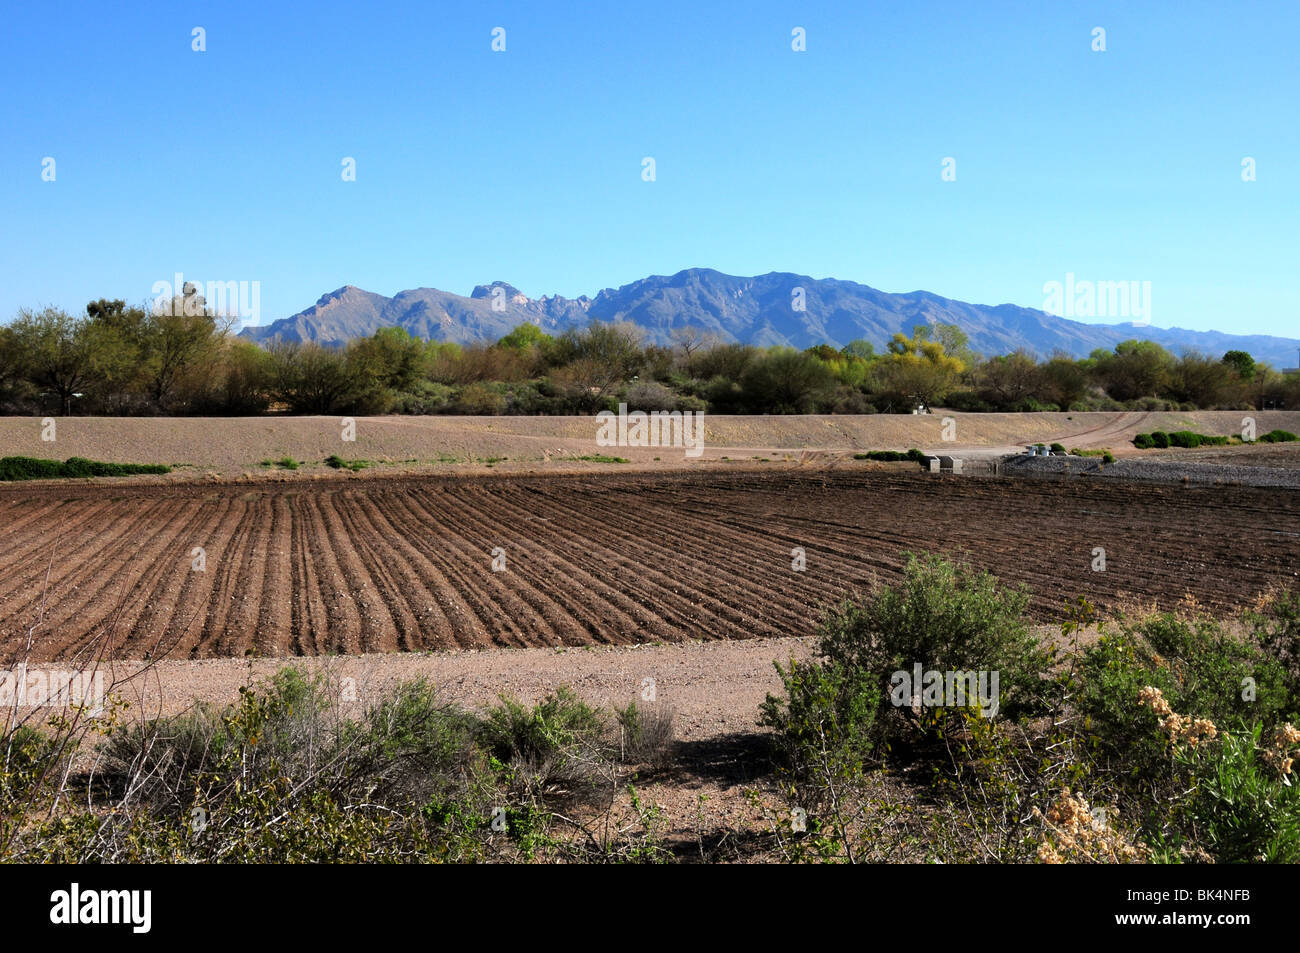 A recharge basin used at Sweetwater Wetlands in Tucson, Arizona, USA. The Santa Catalina Mountains are in the background. - Stock Image